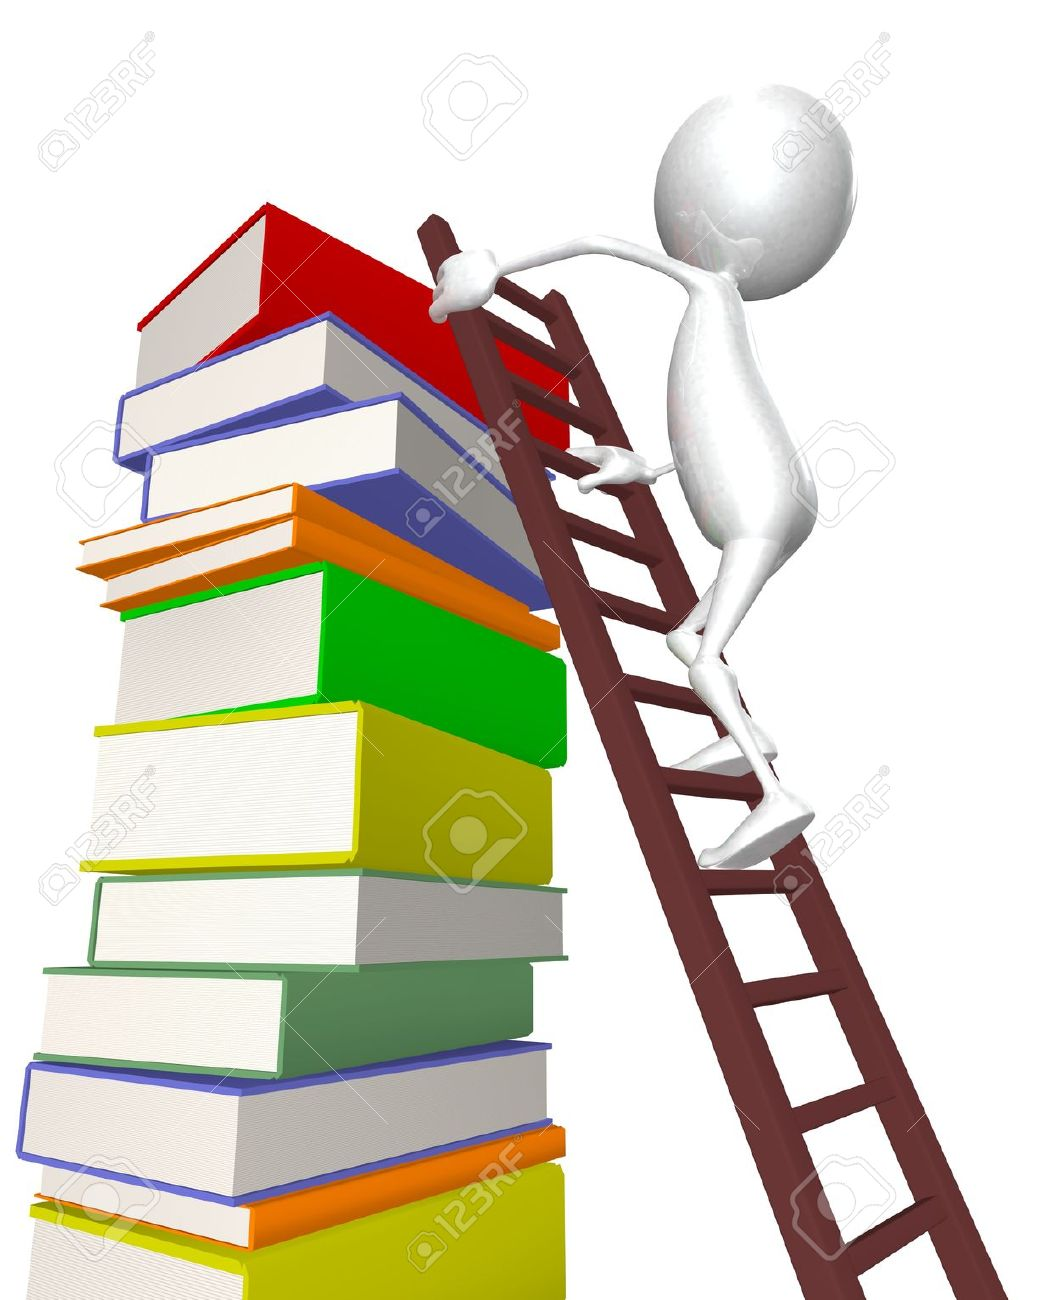 Ladder clipart student. Stairs free download best